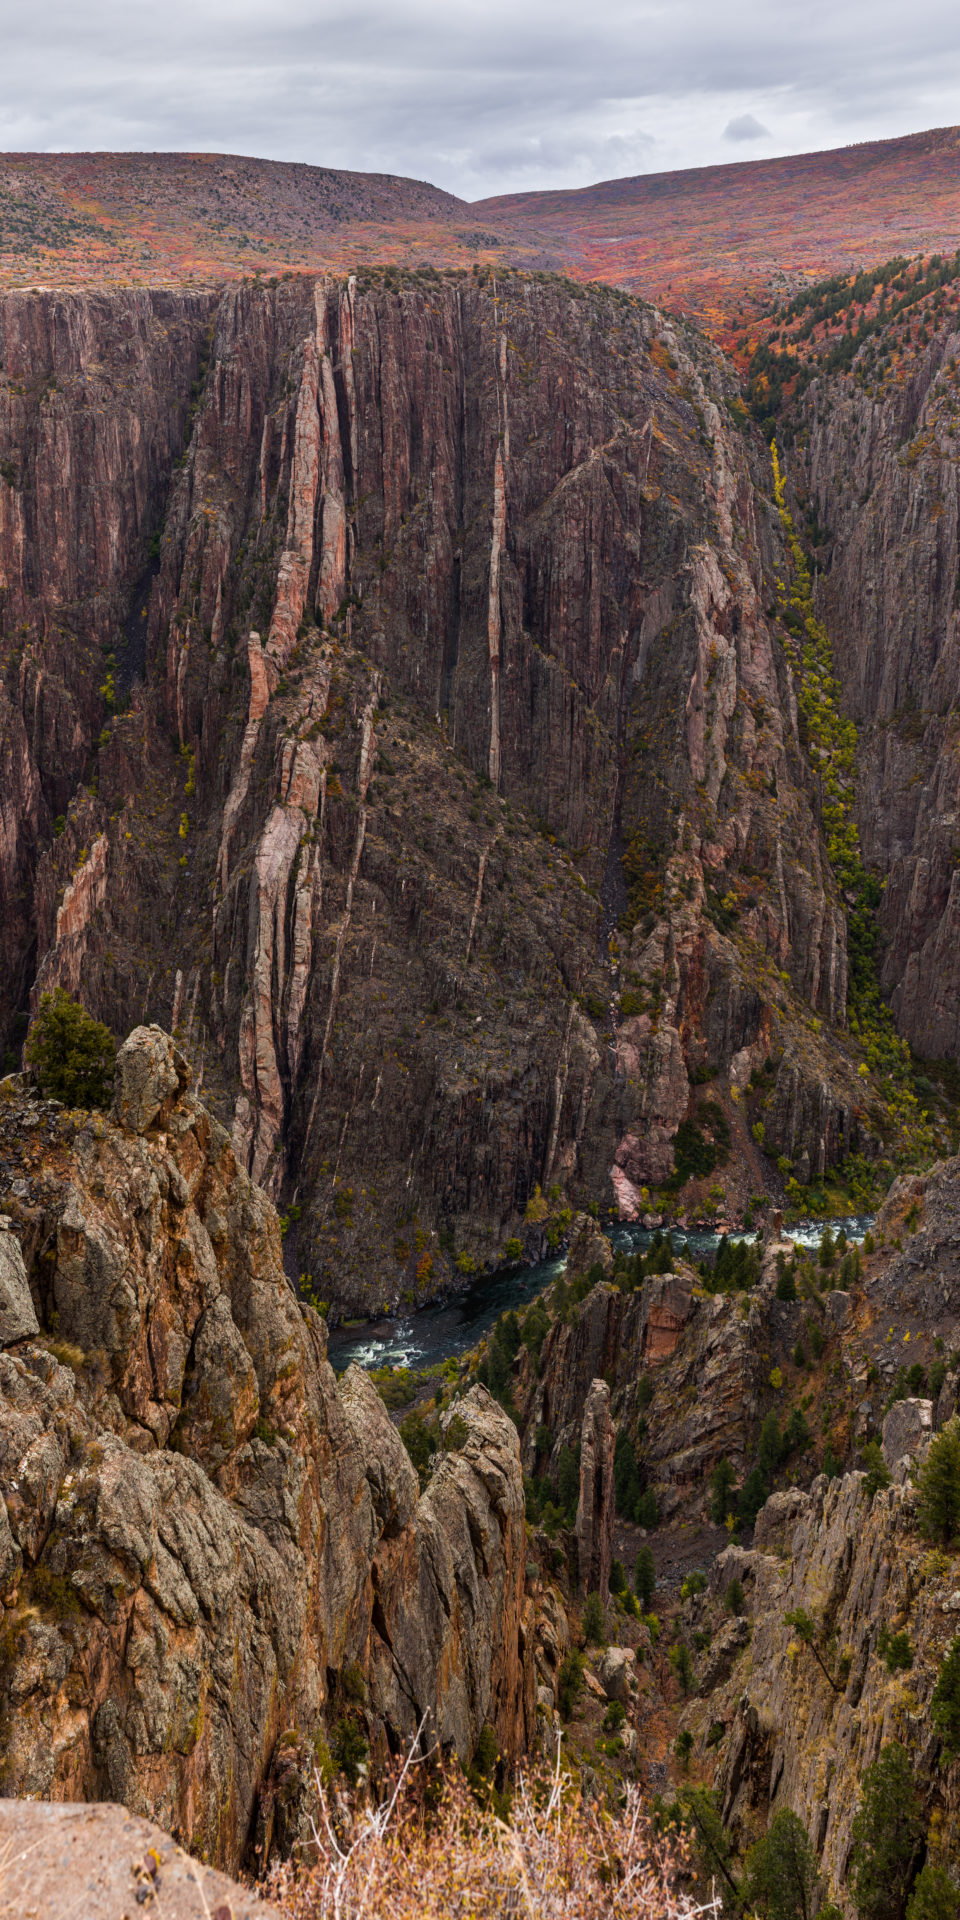 Truck For Scale At Black Canyon Of The Gunnison